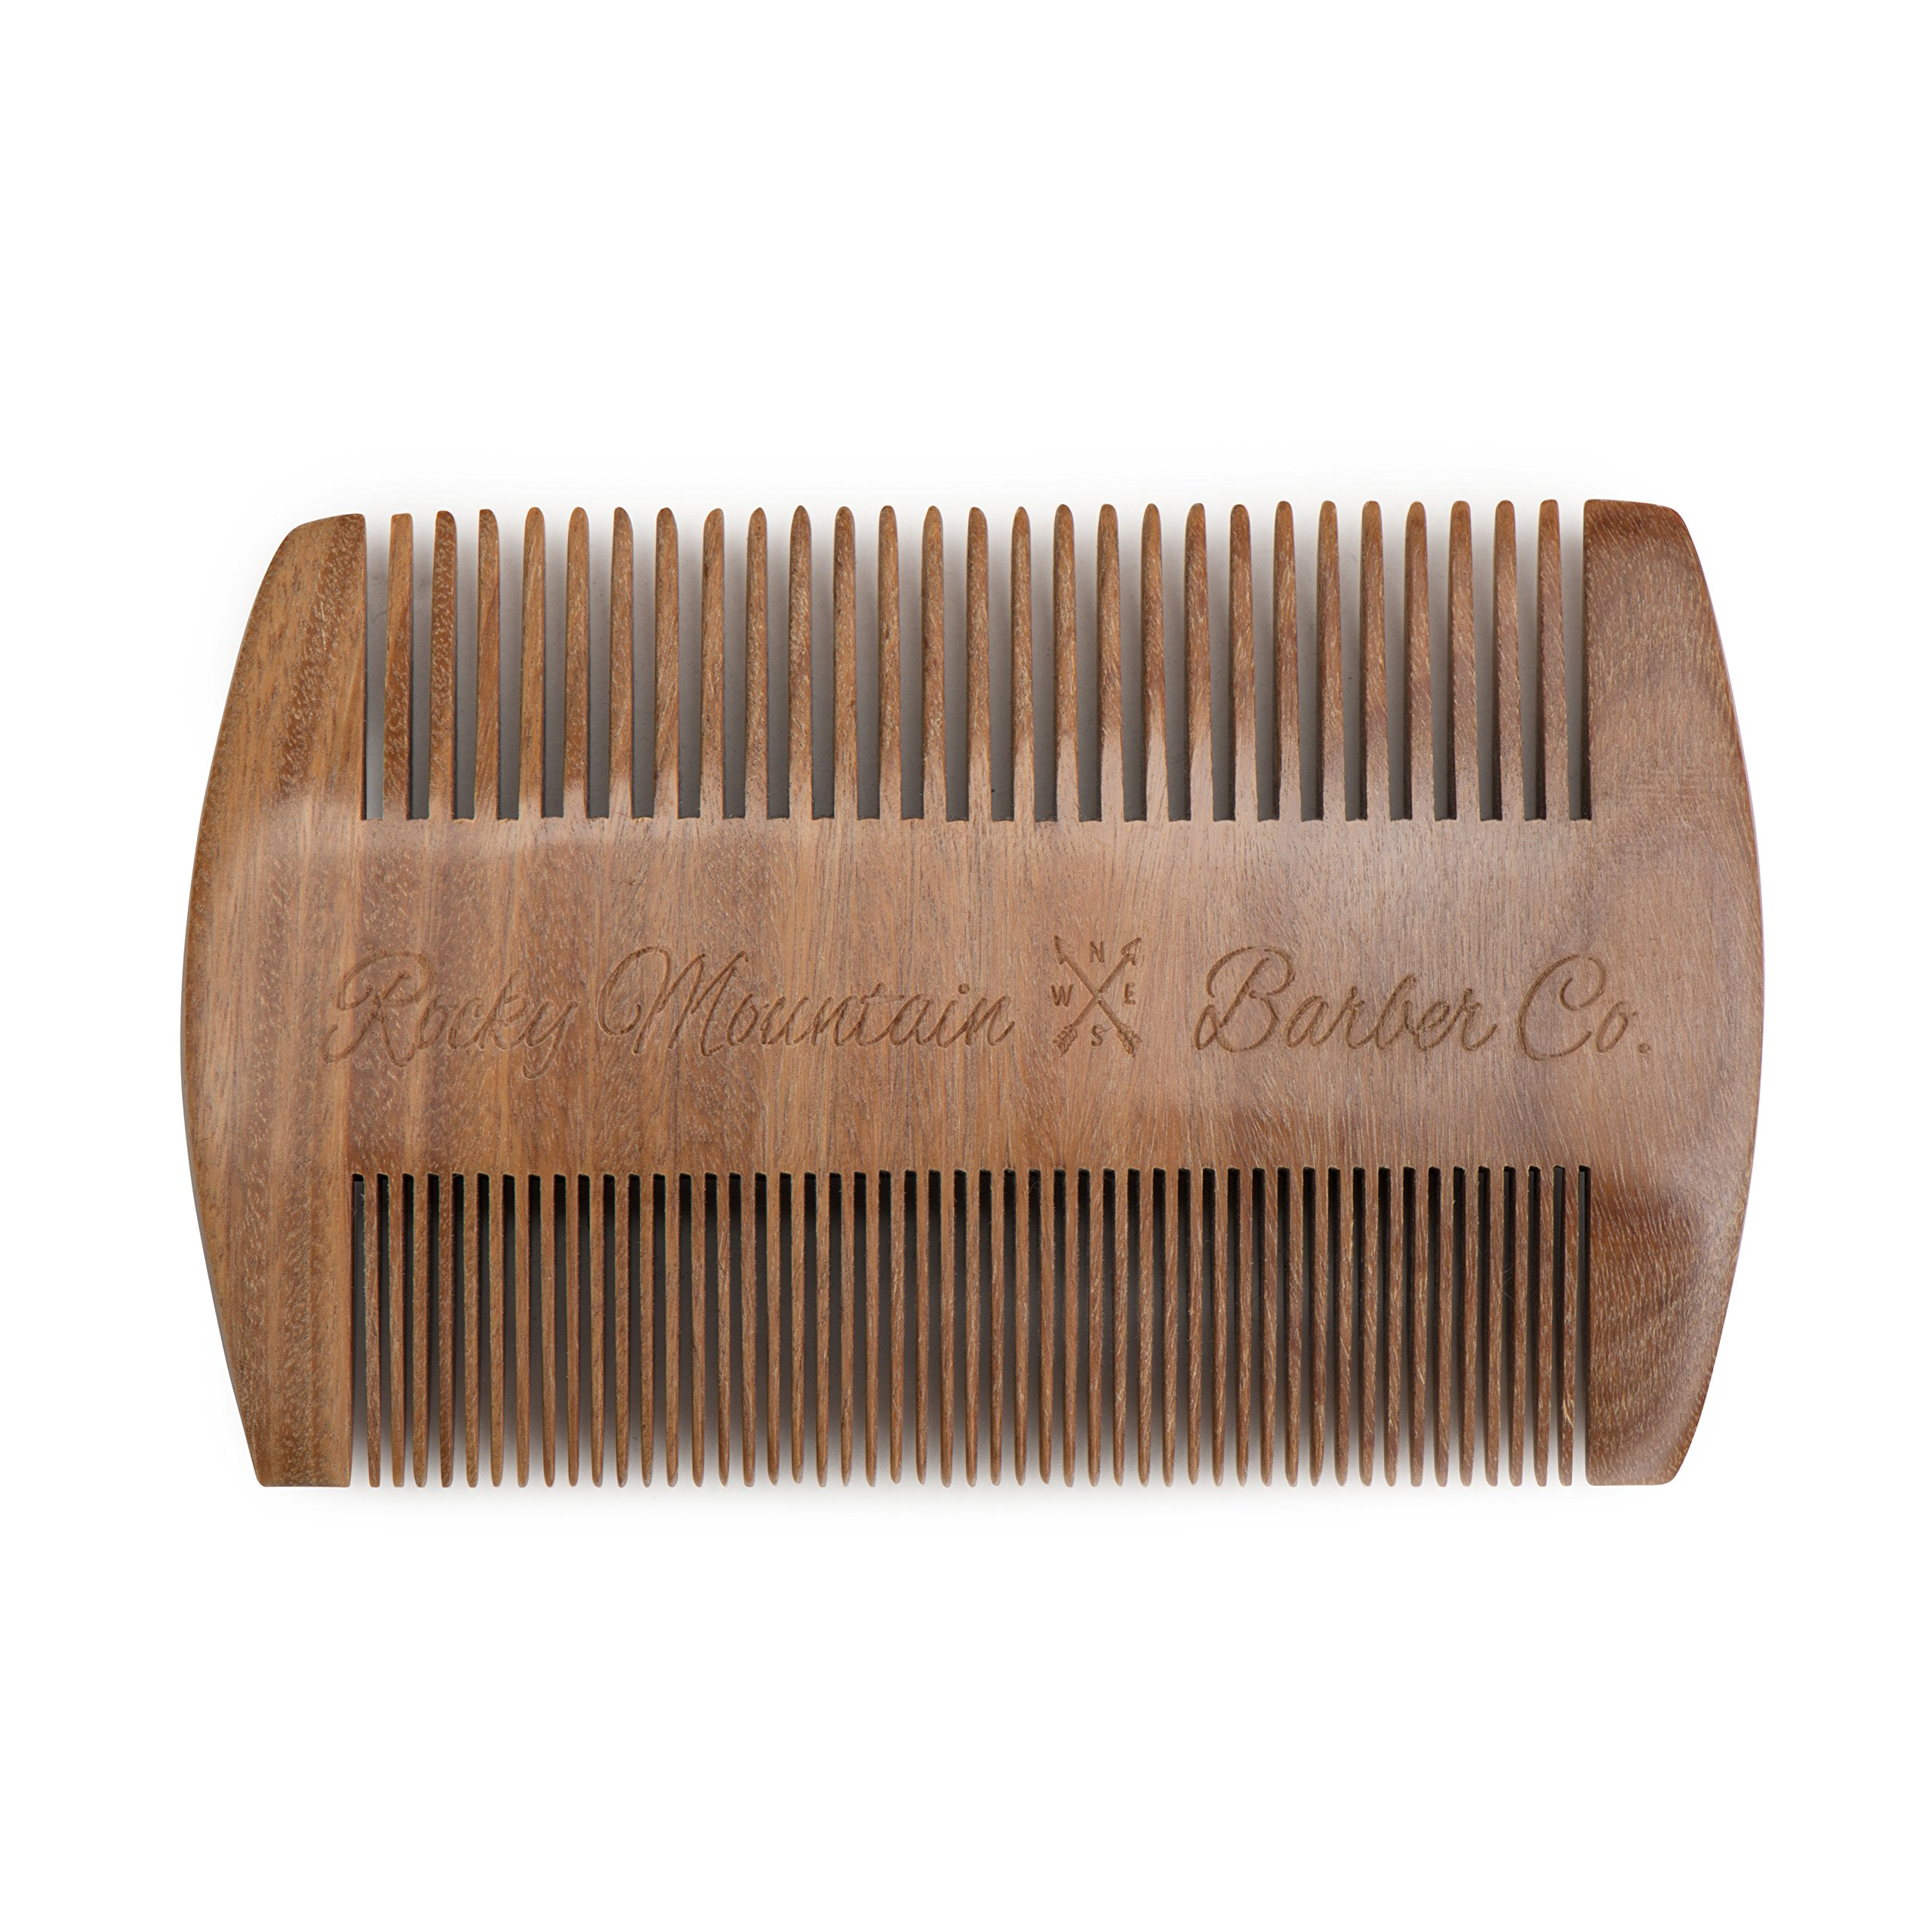 Beard Comb - Natural Sandalwood for Hair with Scented Fragrance Smell with Anti-Static - Handmade Fine Tooth Brush Best for Beard Moustache Packaged in Giftbox by Rocky Mountain Barber Company (Image #9)